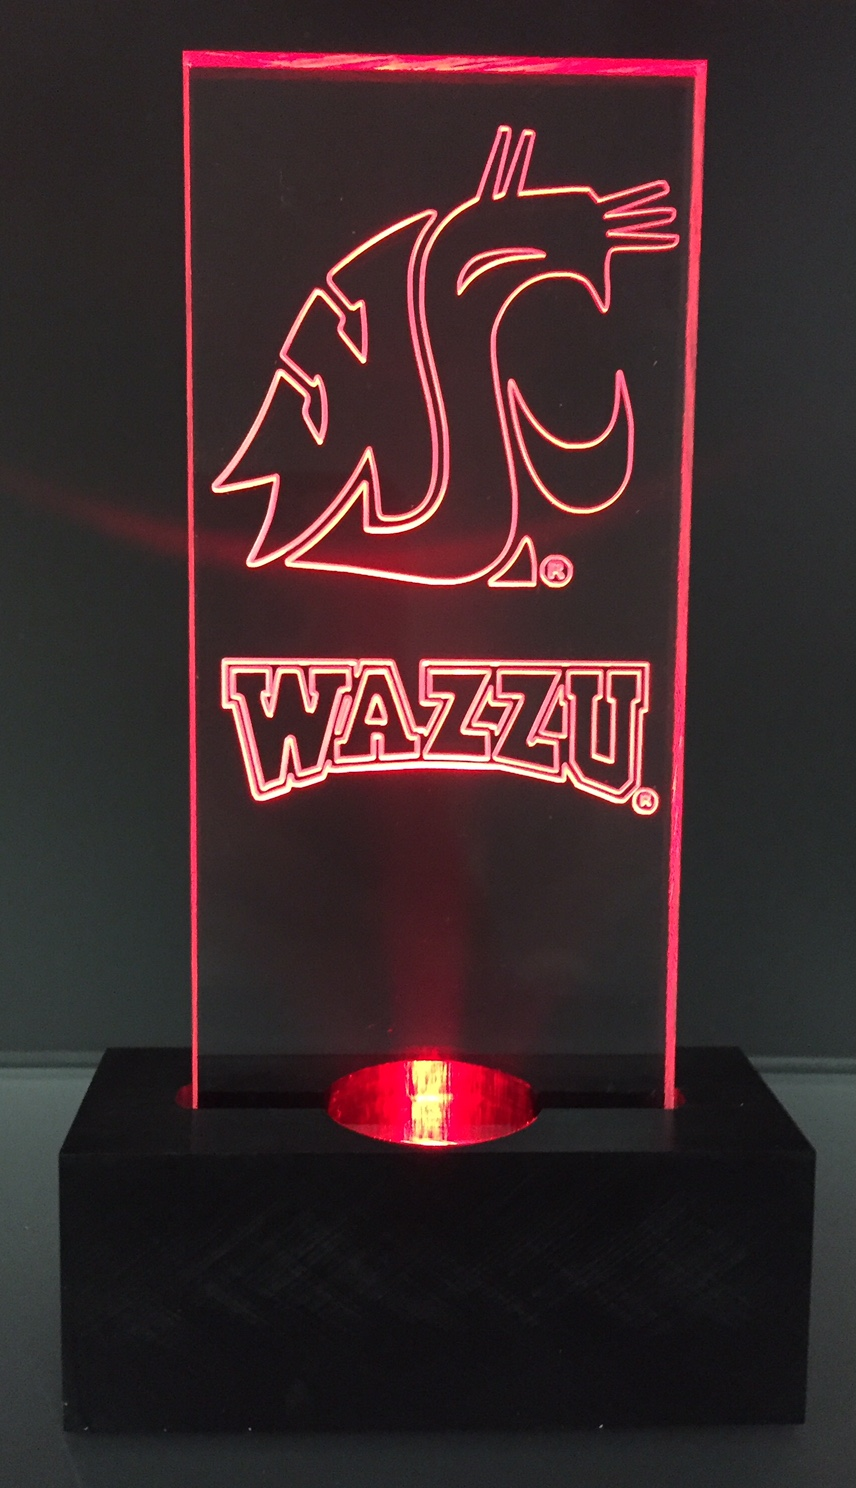 New Wazzu LED Sign